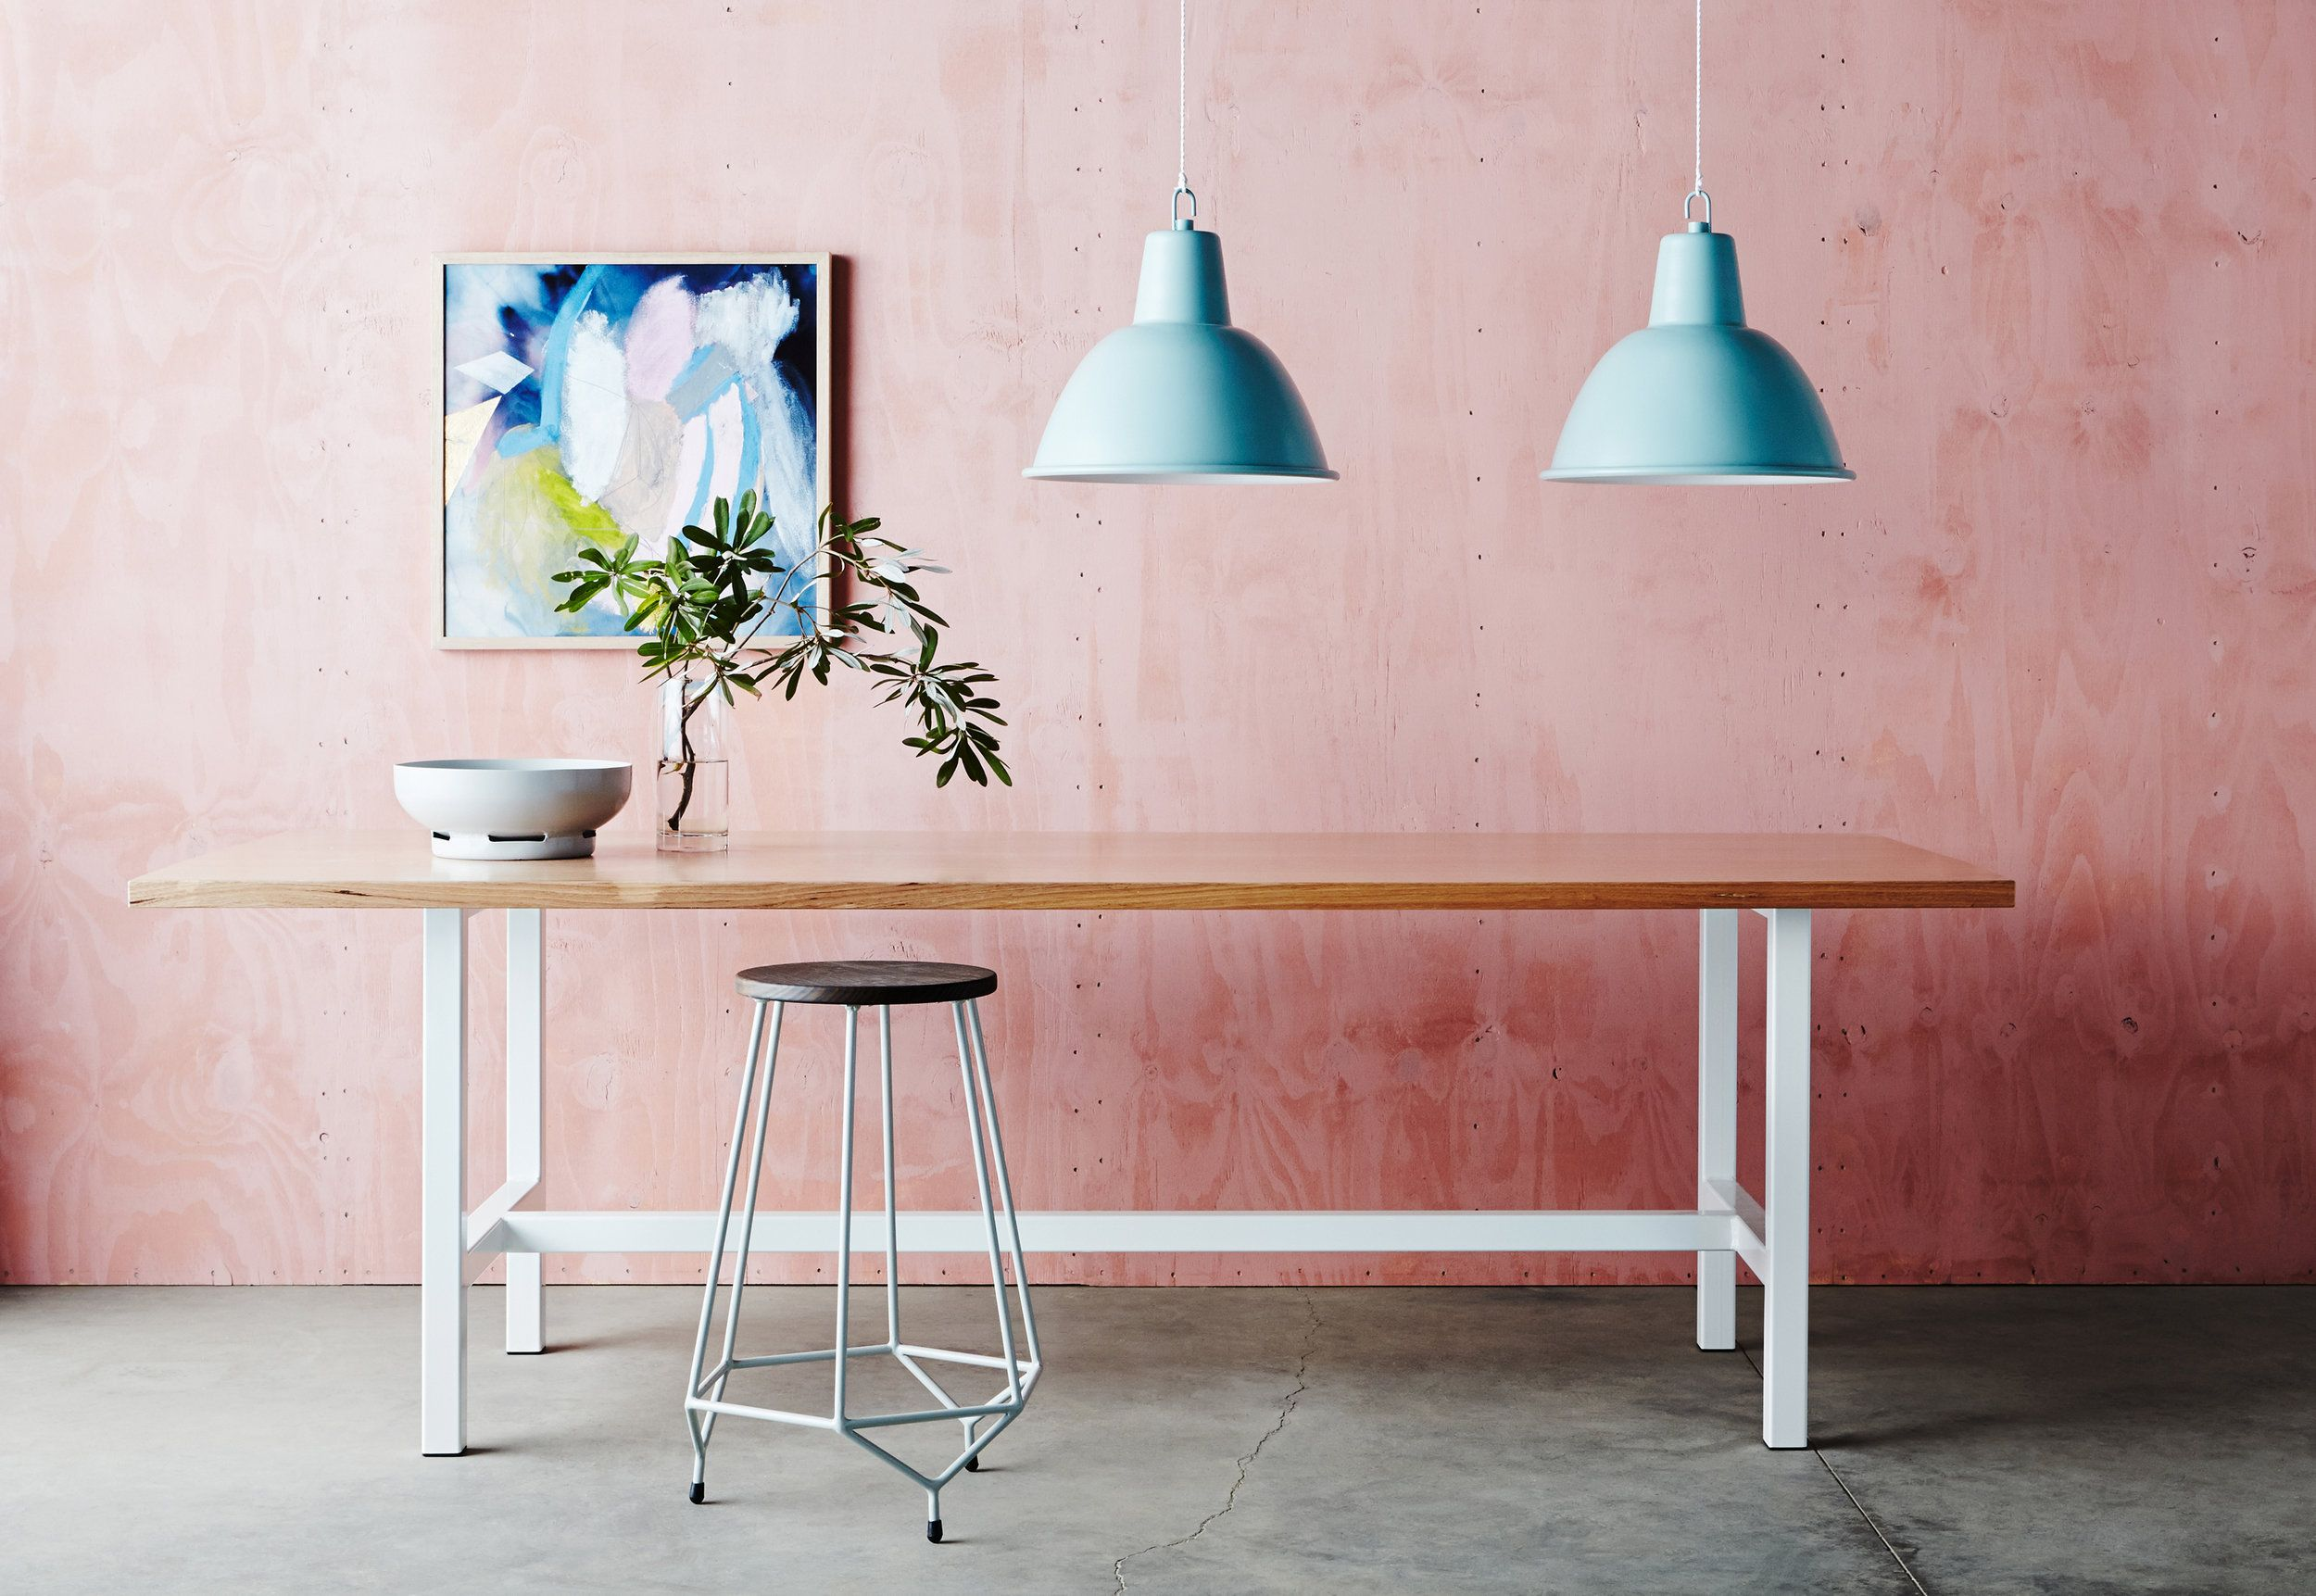 O'Brien is an photographer of Melbourne interiors